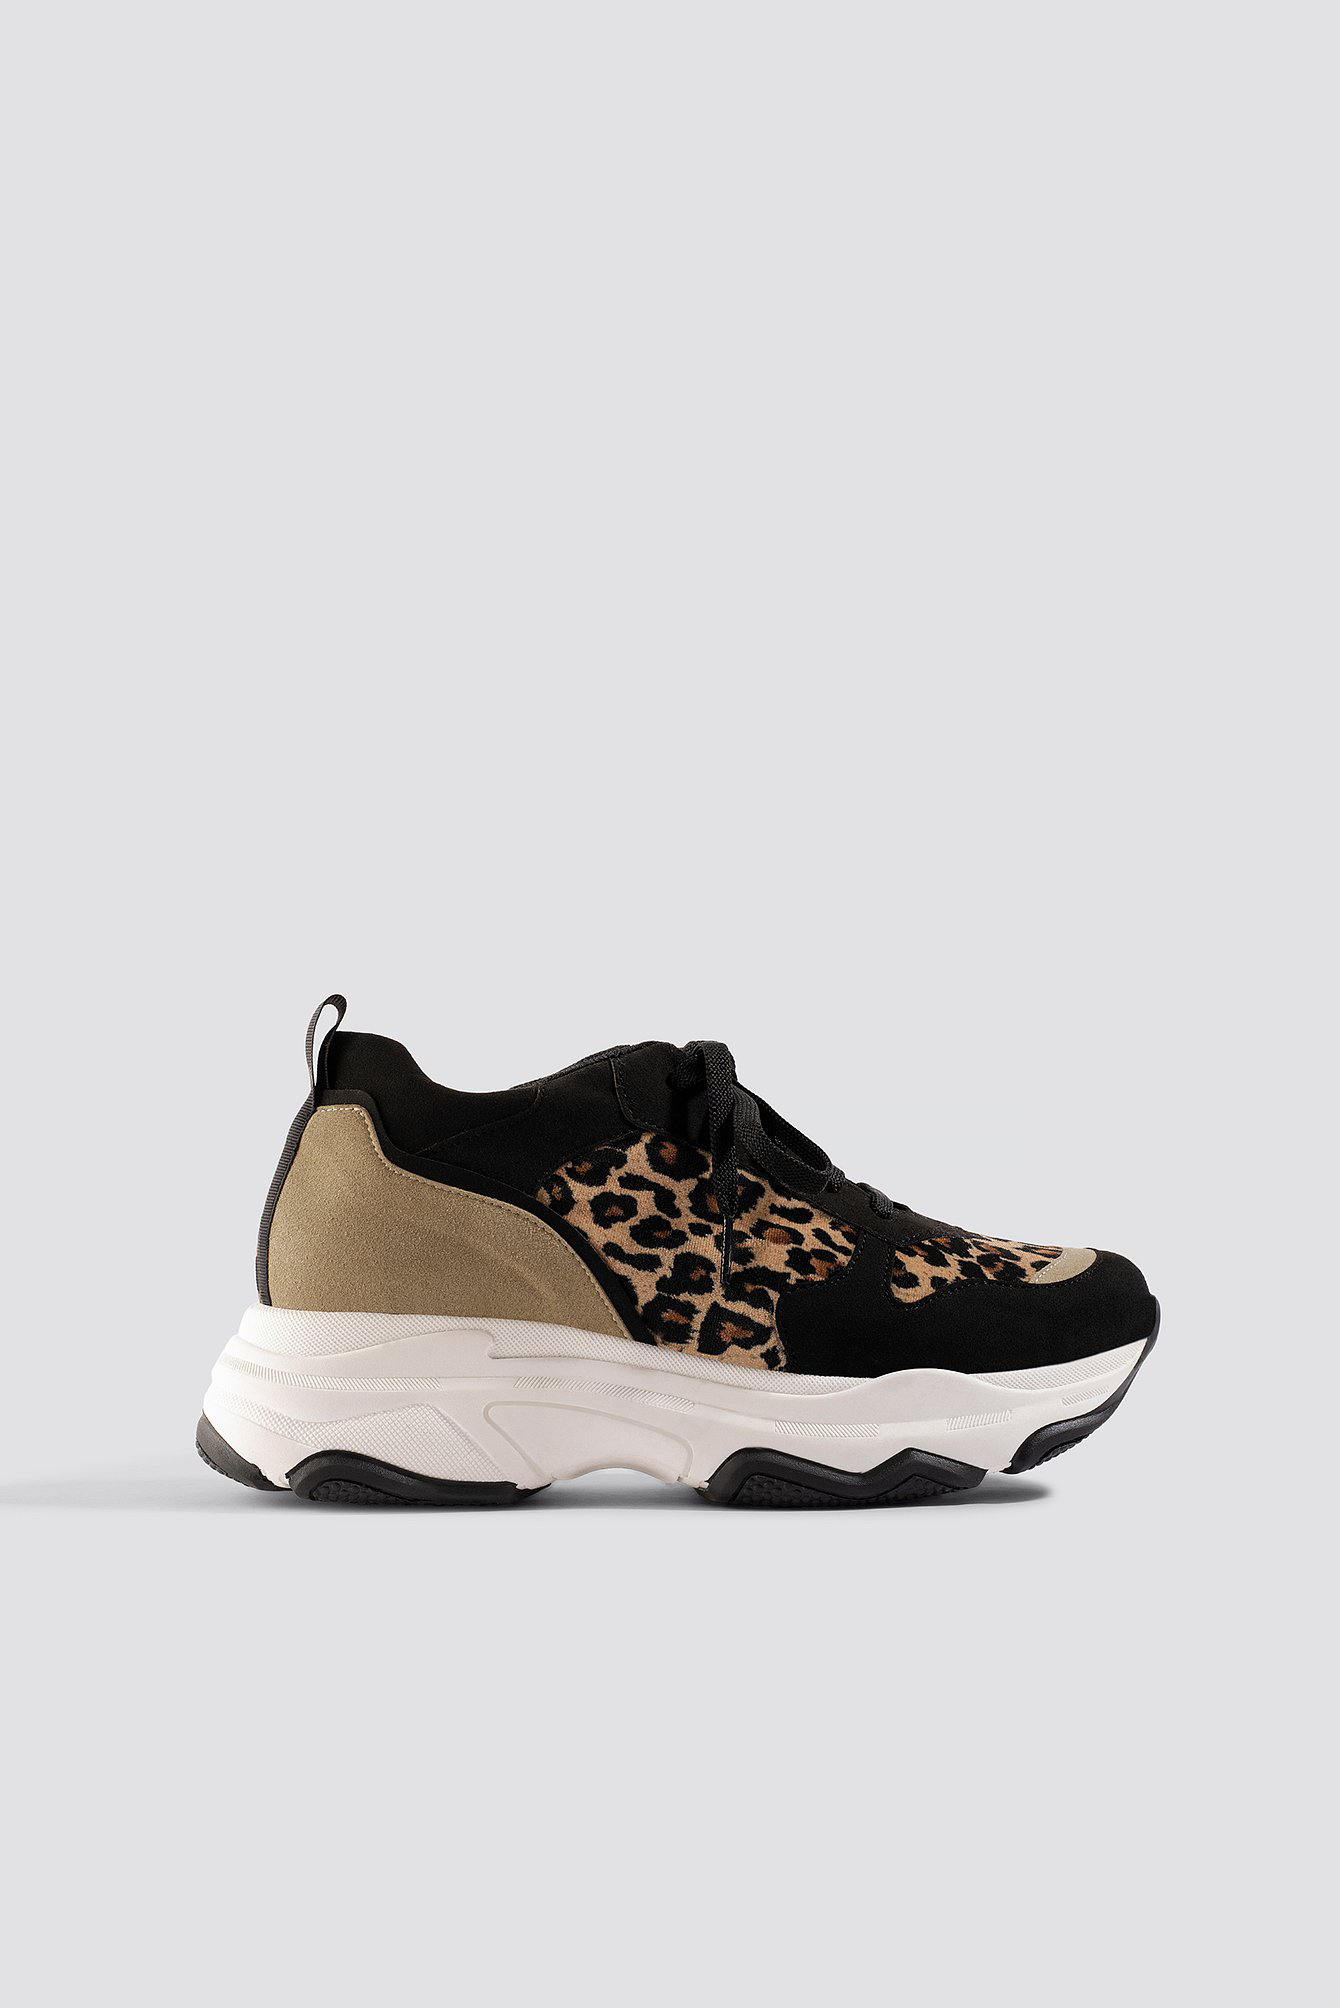 competitive price 642d3 3594b Na-Kd Leopard Chunky Trainers - Black, Brown, Multicolor In Black,Brown